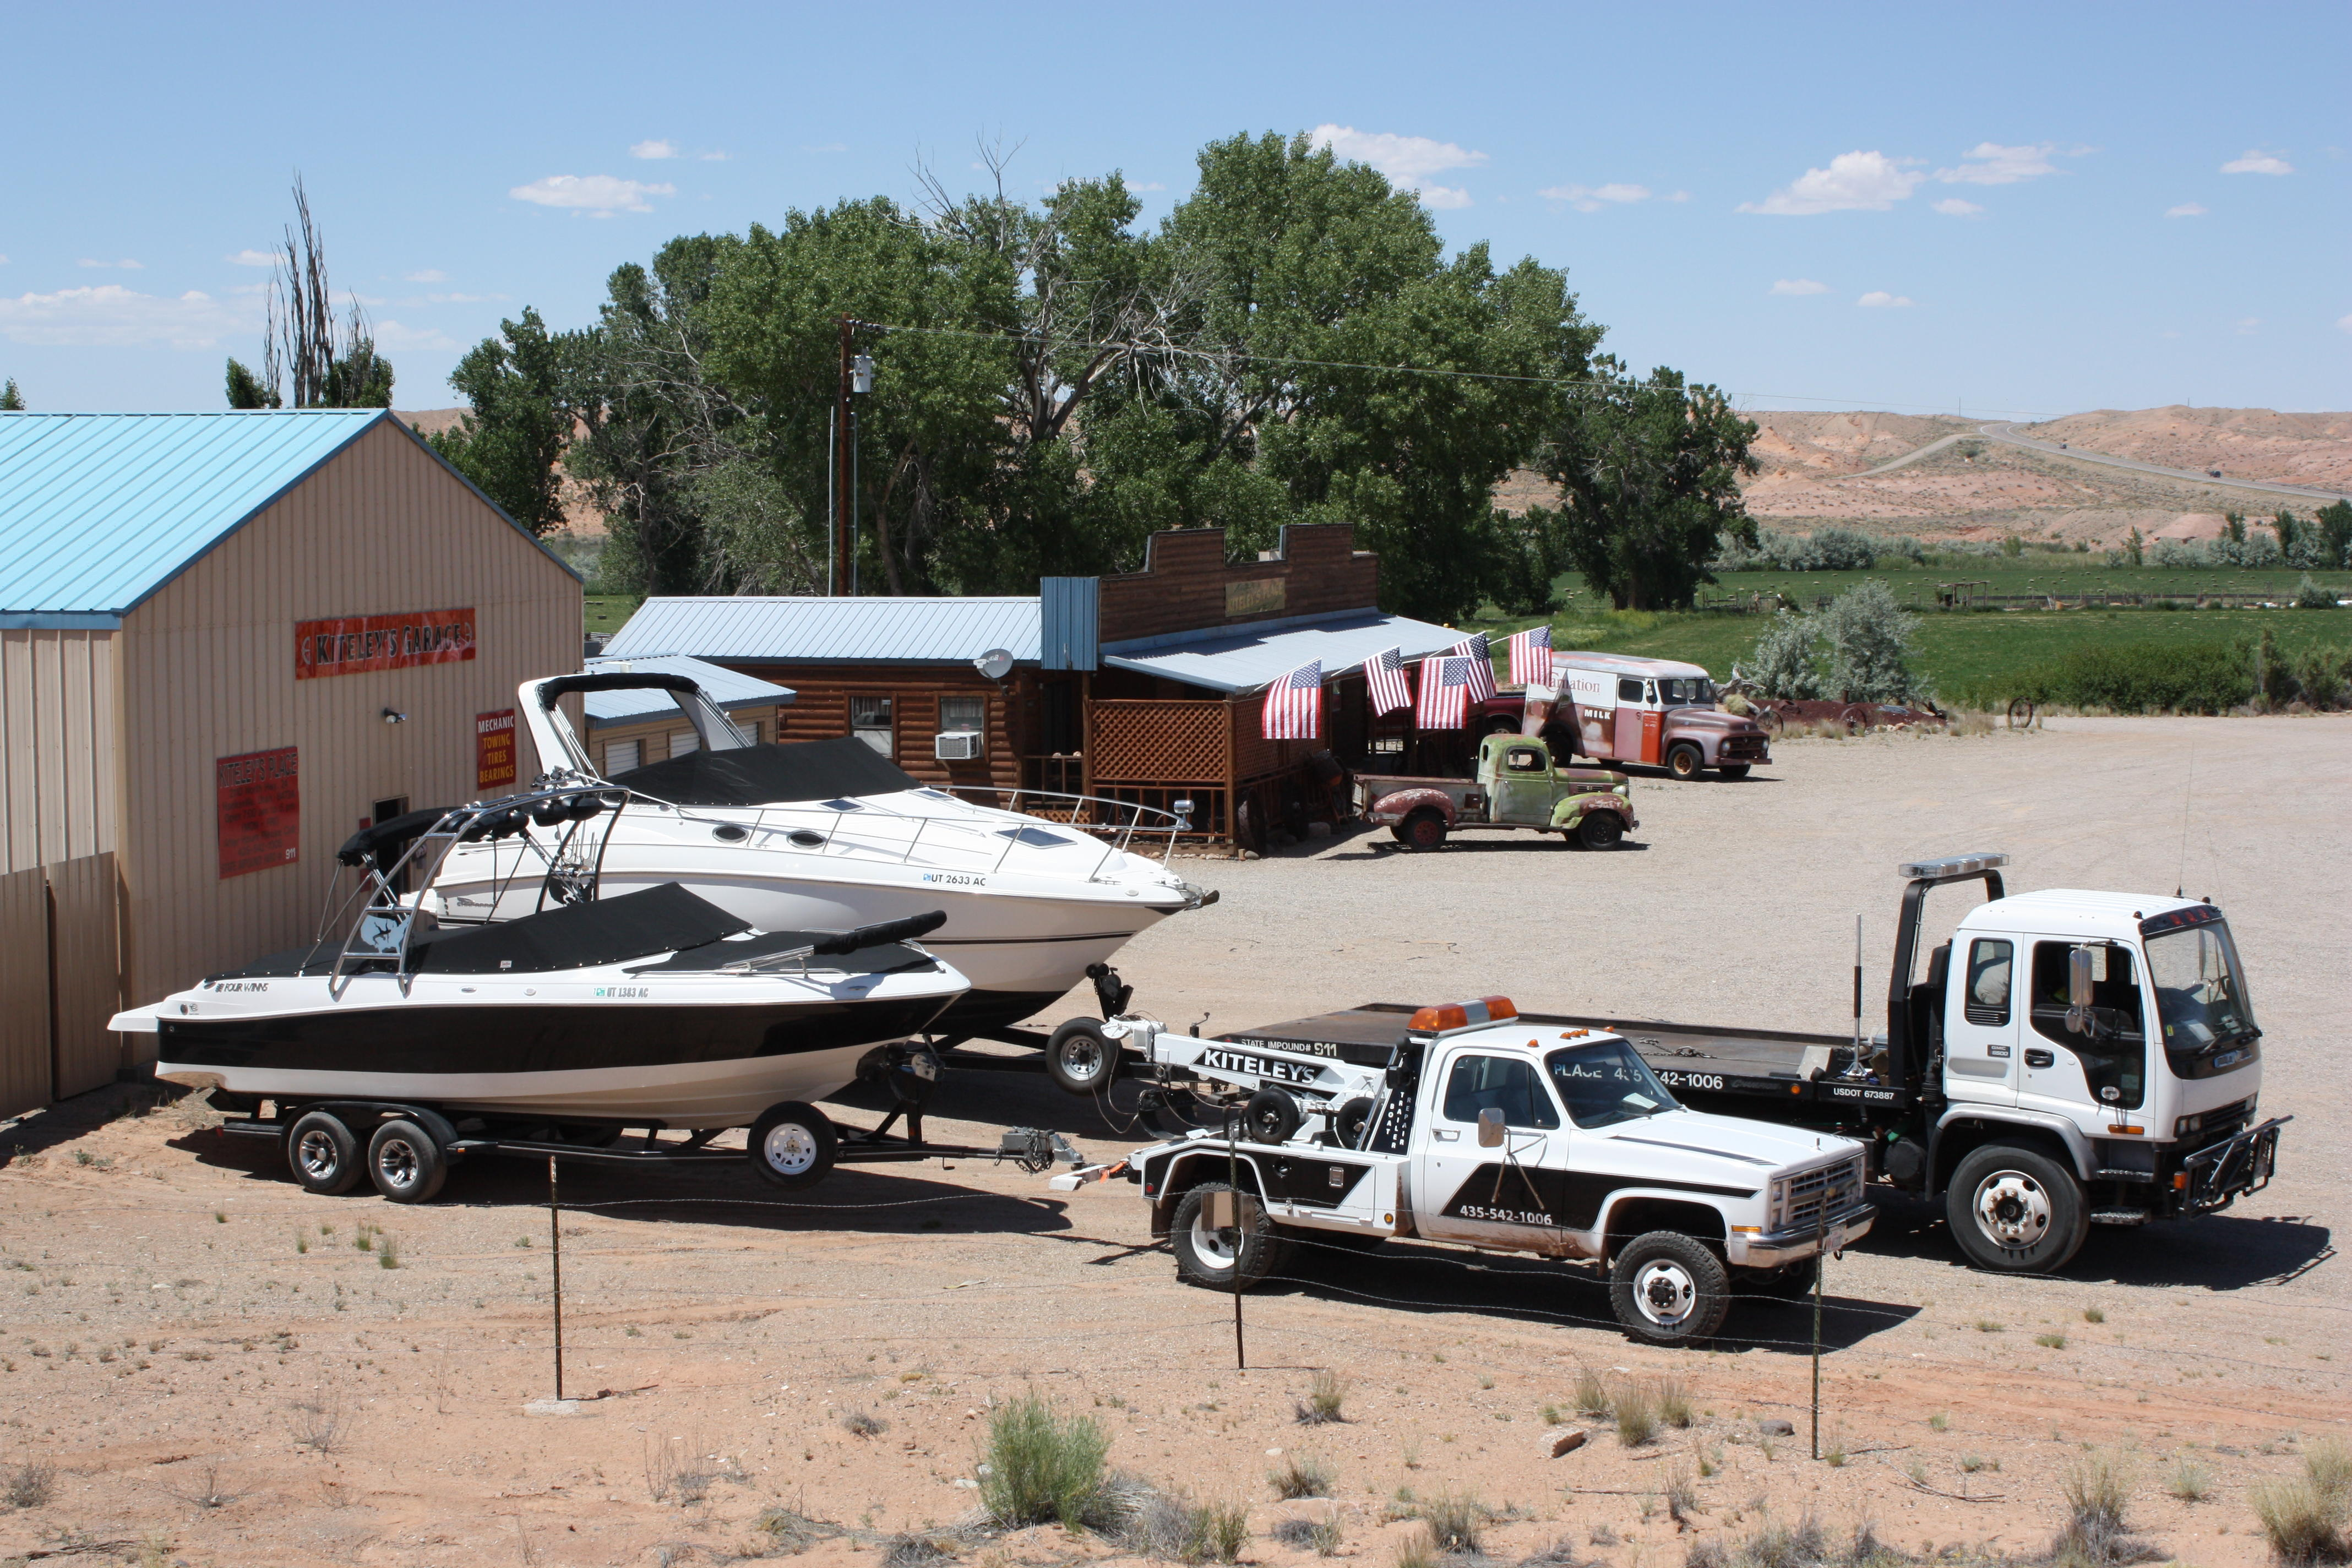 Kiteley's Boat Trailer Repair and Service Center